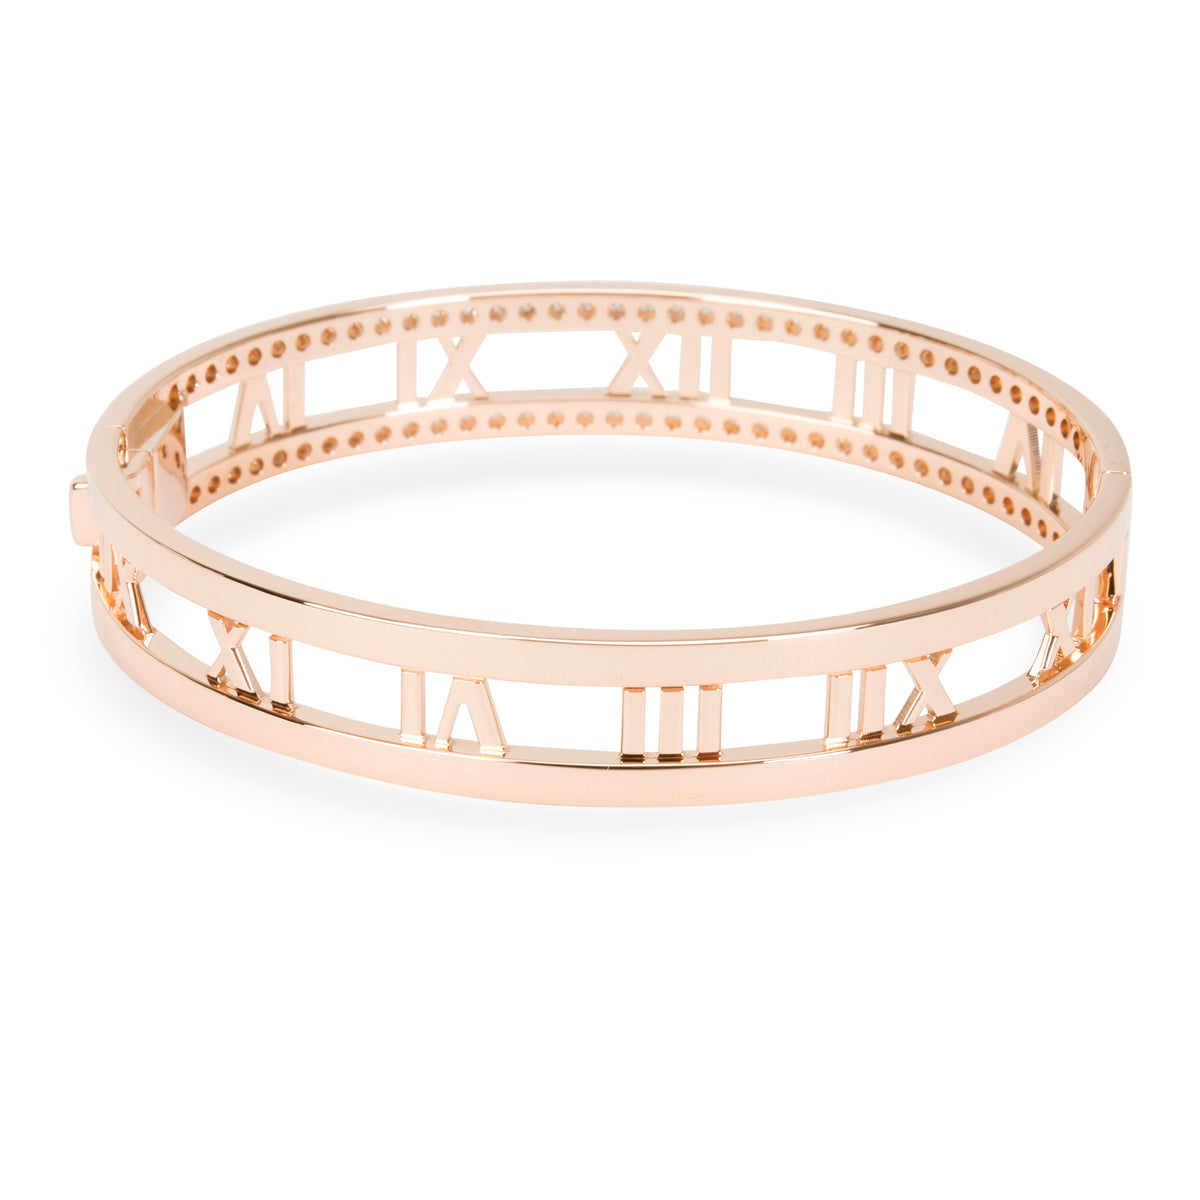 Tiffany & Co. Atlas Diamond Bangle in 18KT Rose Gold 0.91 CTW